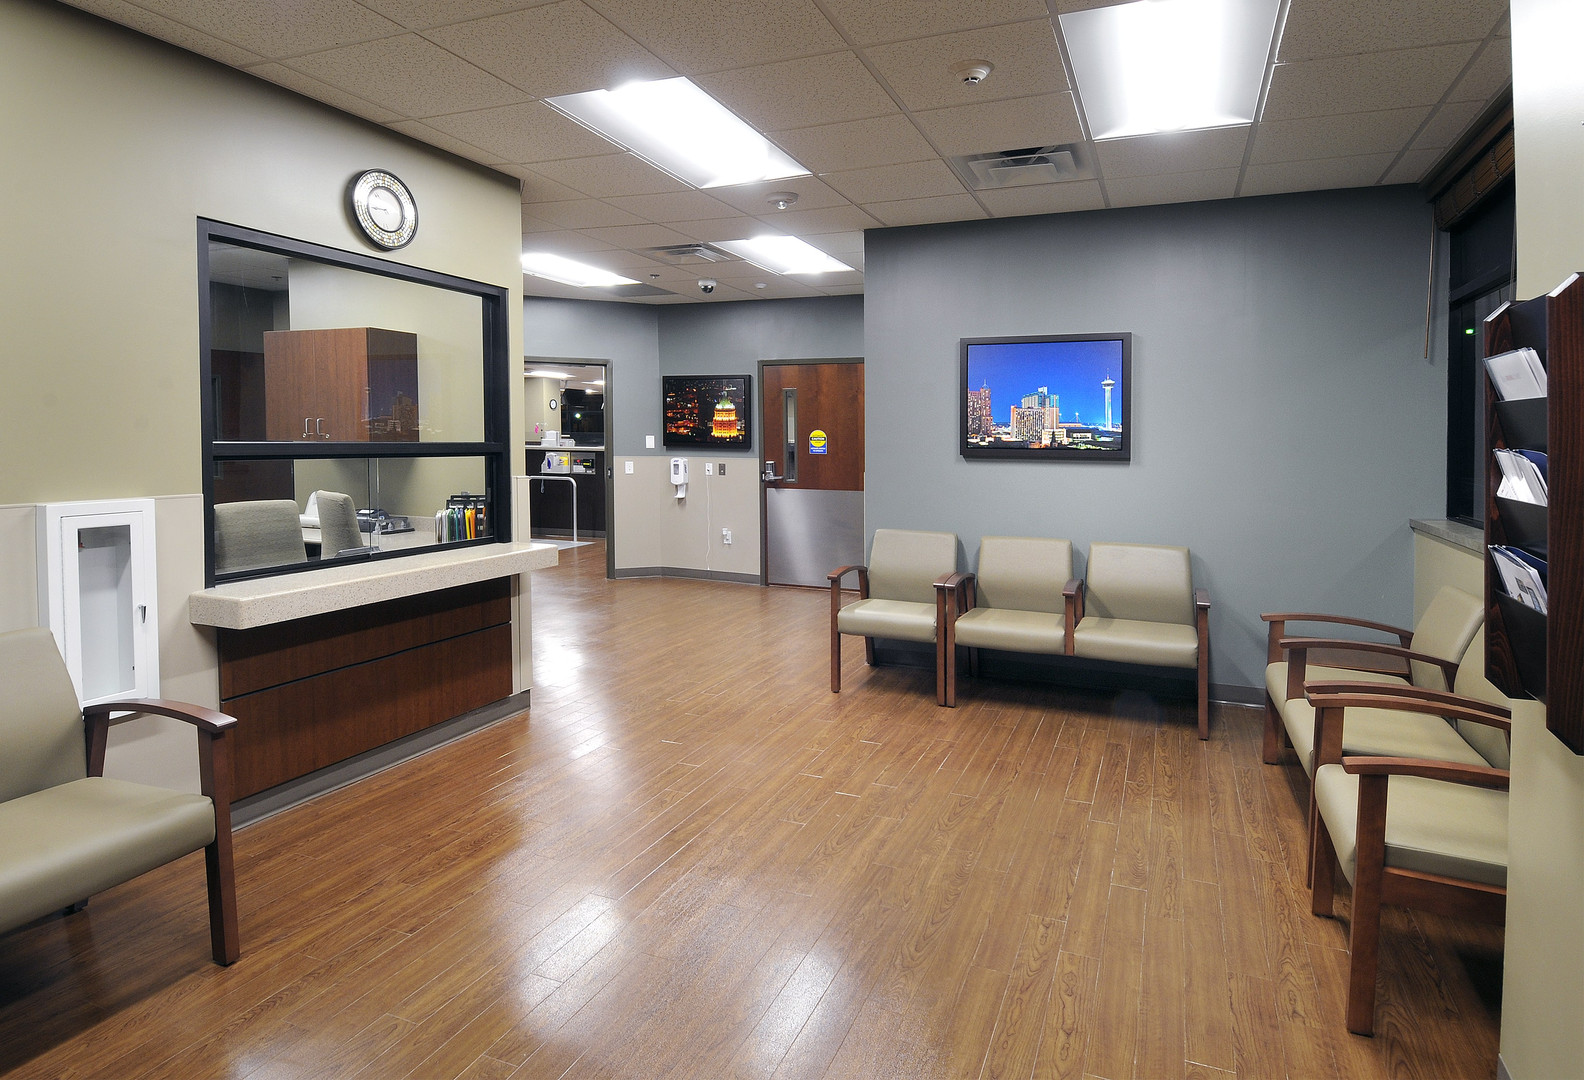 Sunnyvale Healthcare Clinic